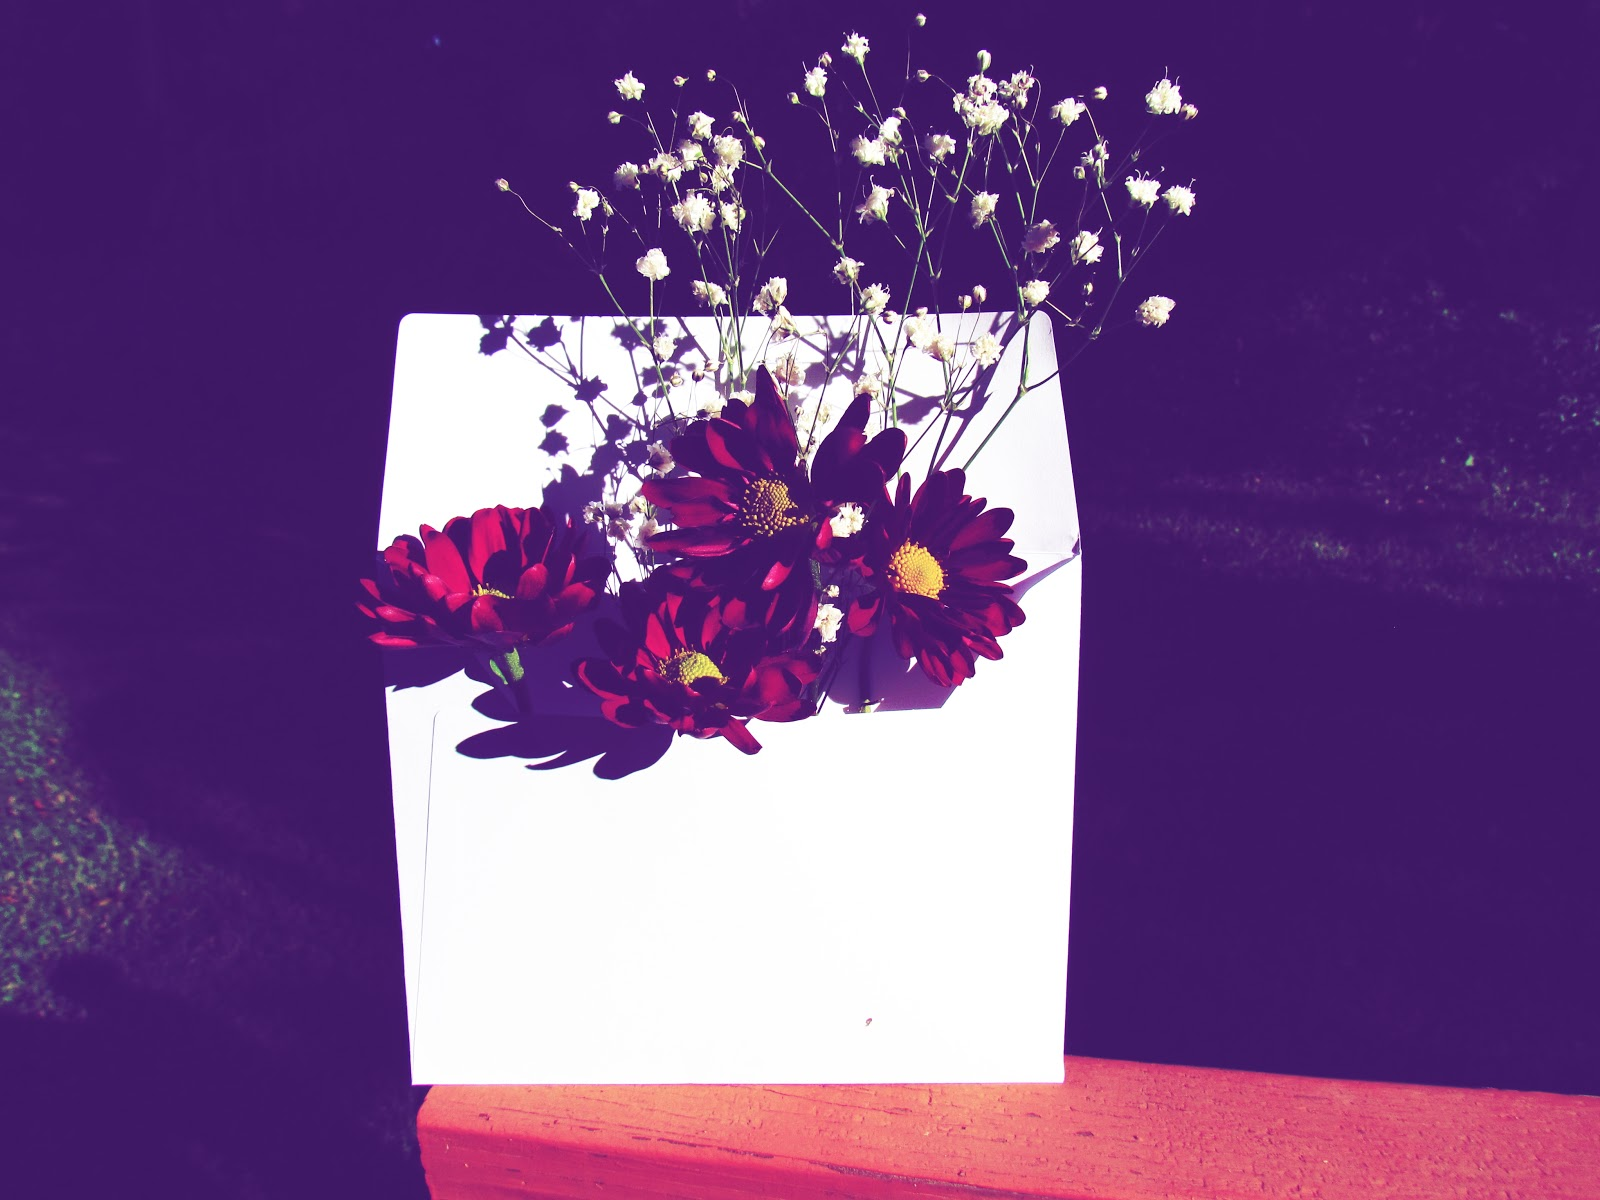 A White Envelope Floral Arrangement Carrying Autumn Inspired Nature Art Display